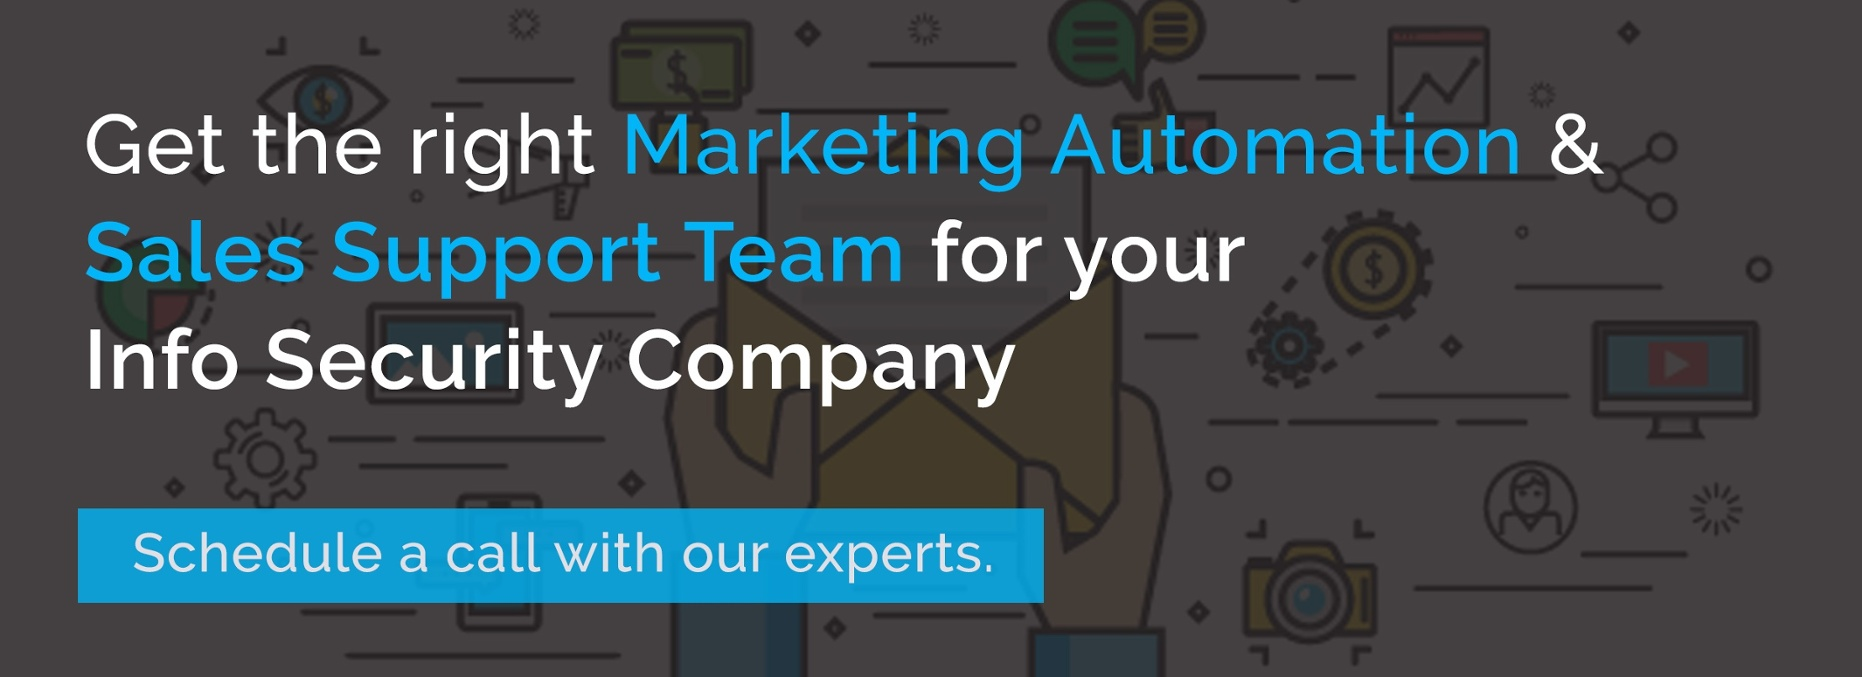 Get the right Marketing Automation & Sales Support Team for your   InfoSecurity  Company